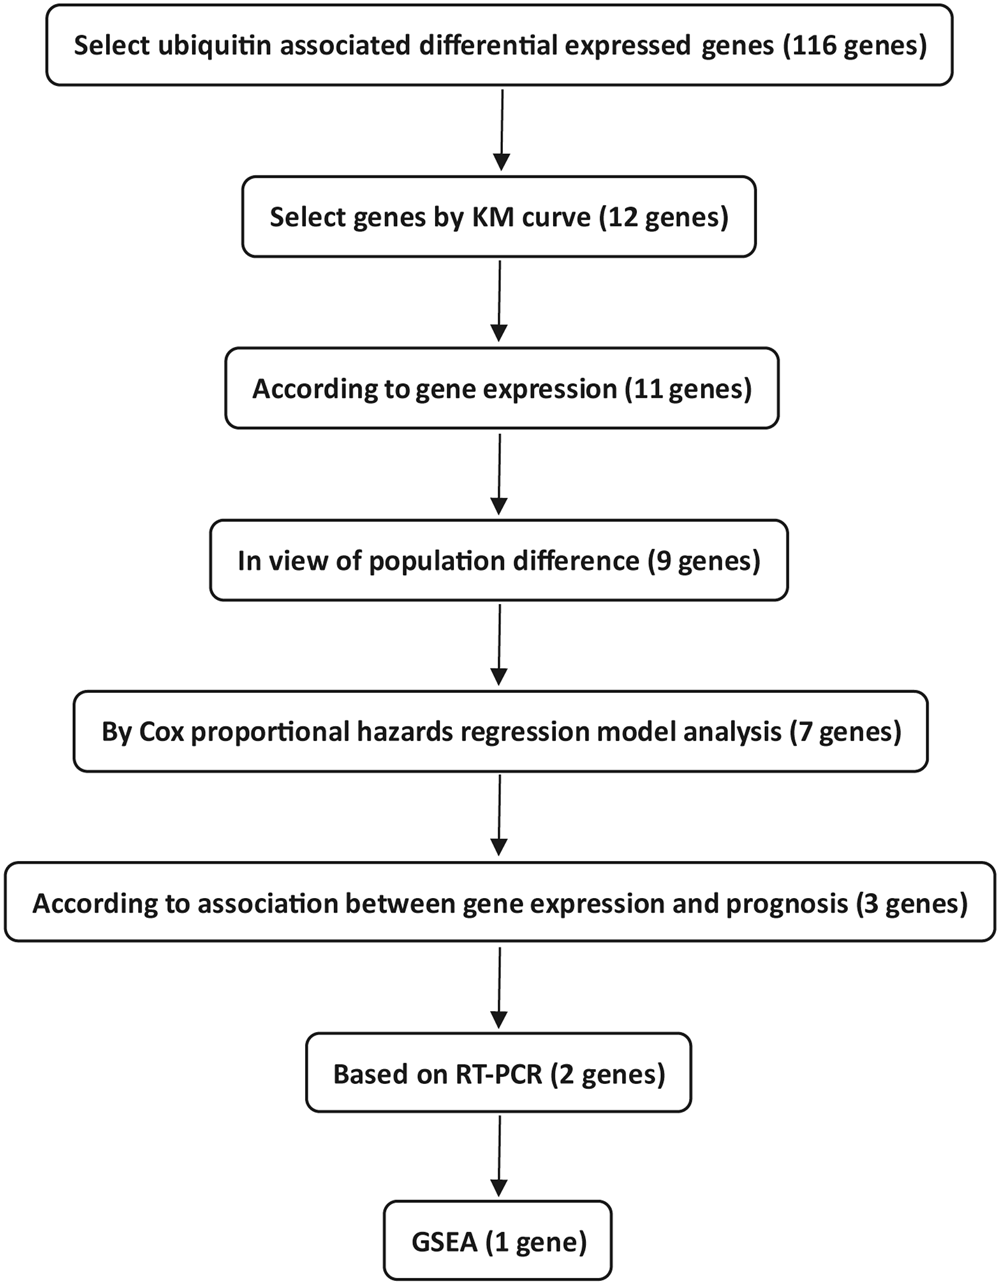 Expression Profiling Of Ubiquitin Related Genes In Lkb1 Mutant Lung